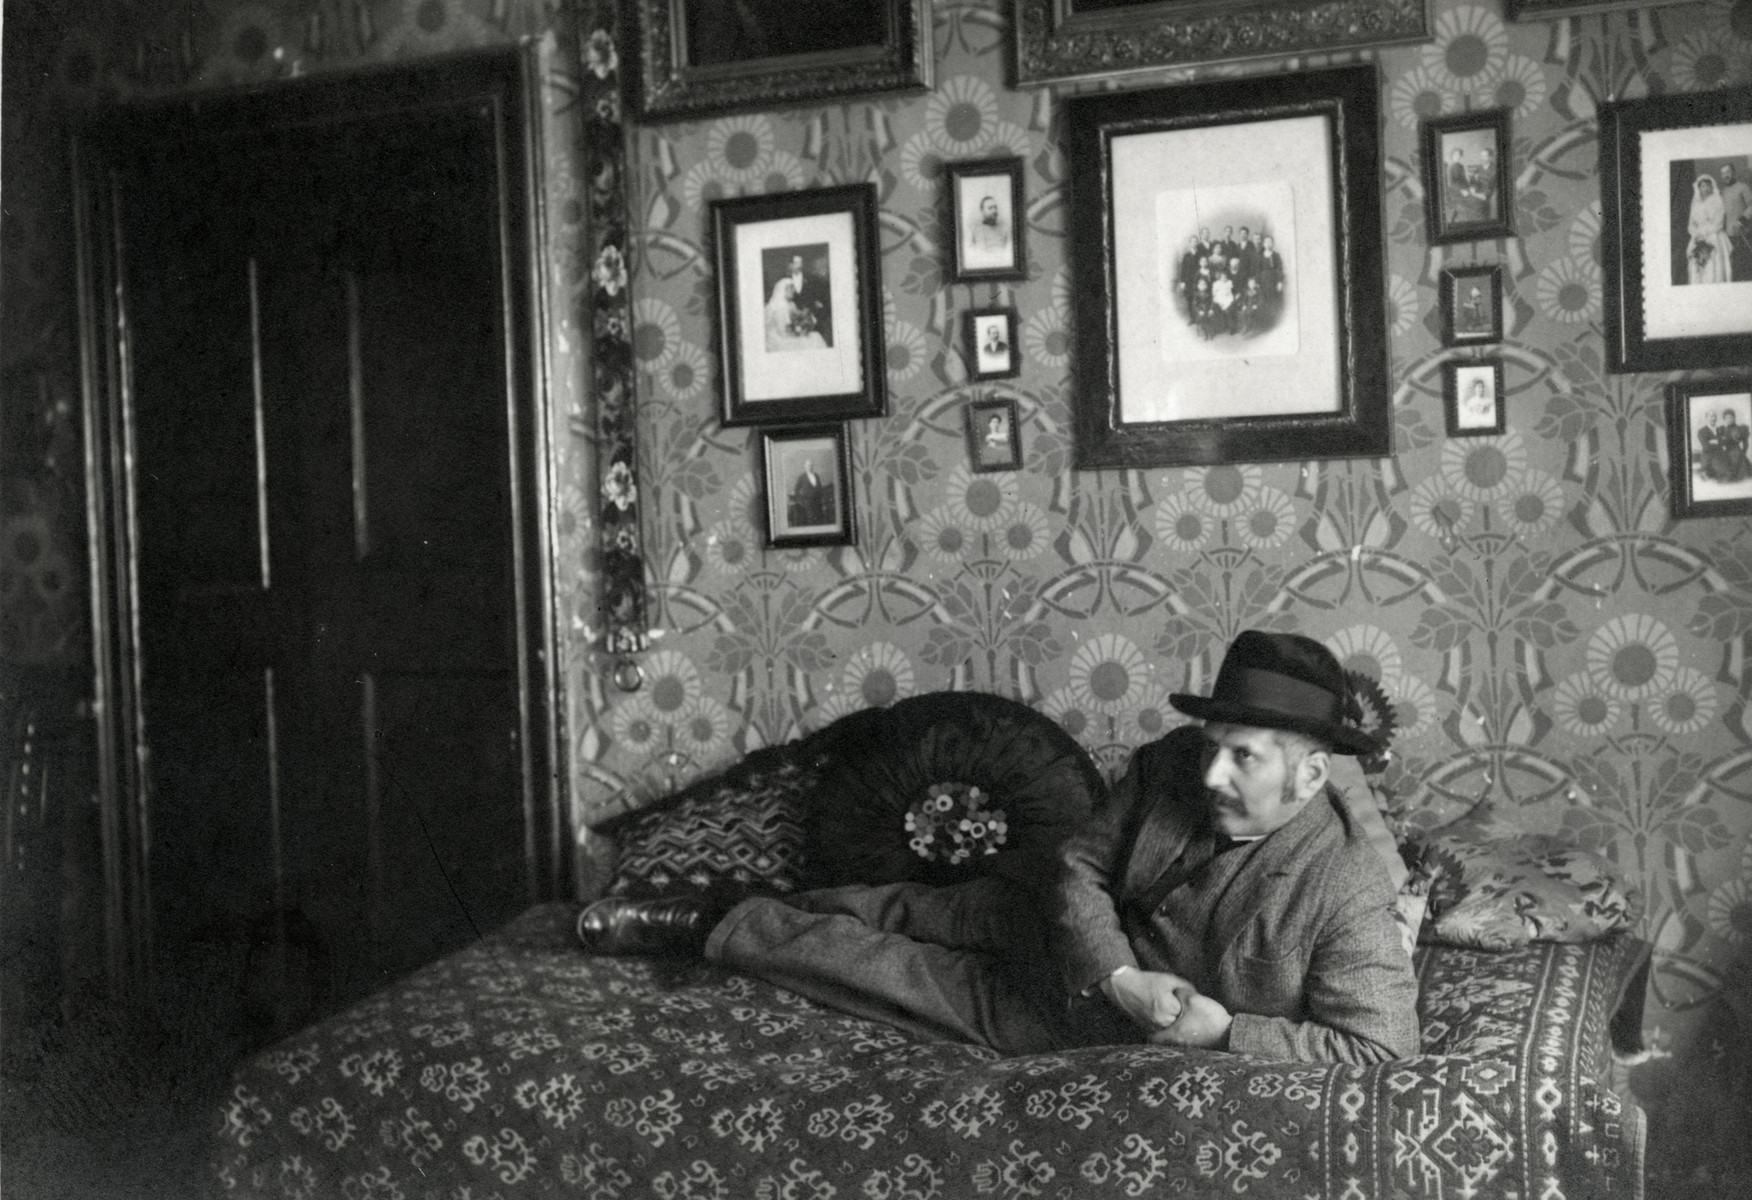 Wilhelm Steiner poses on the bed in his apartment in prewar Bratislava.